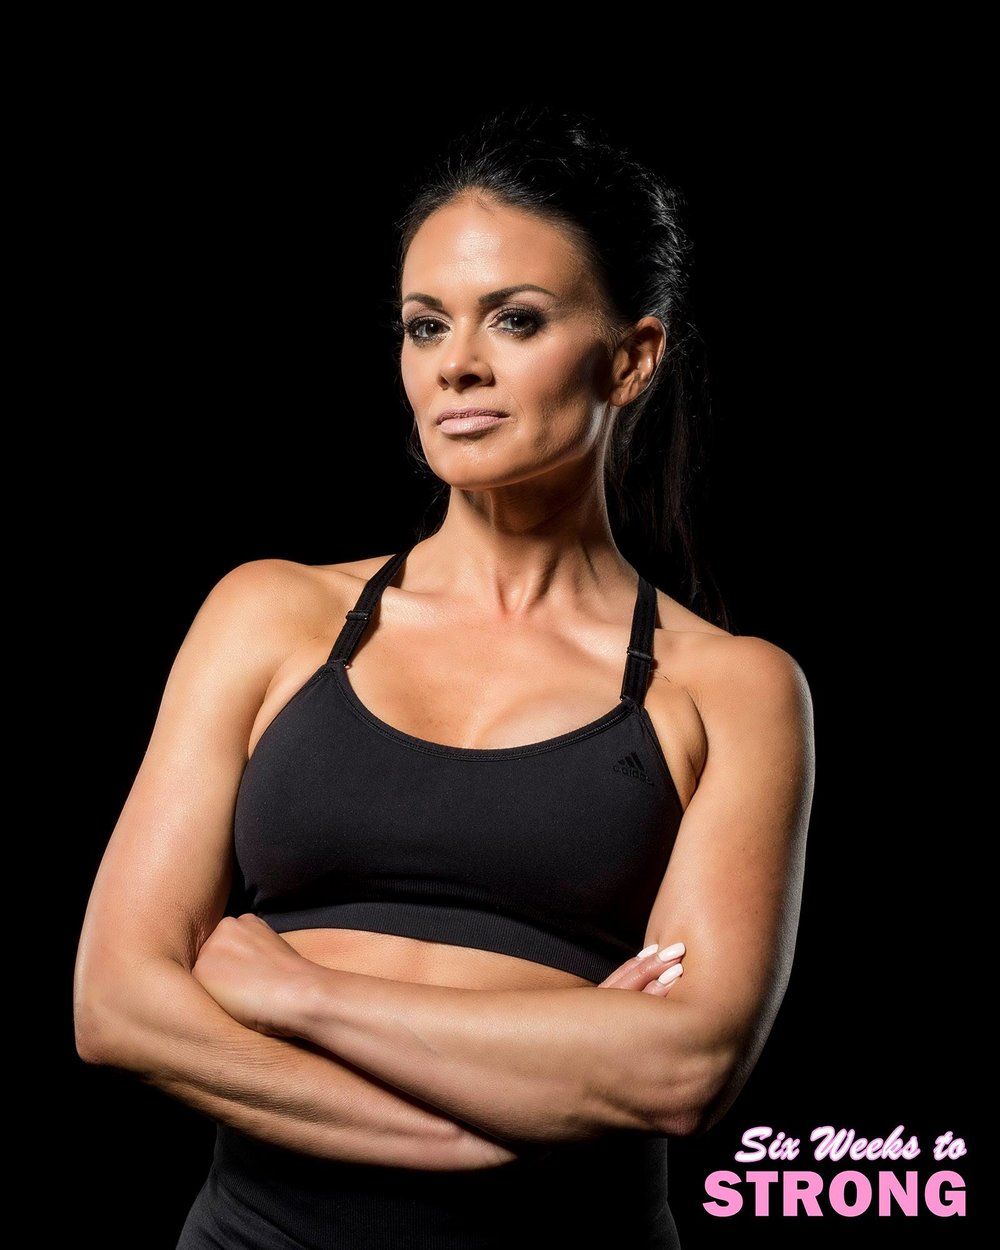 Six Weeks to Strong Trainer and fitness guru Michelle Goldrick